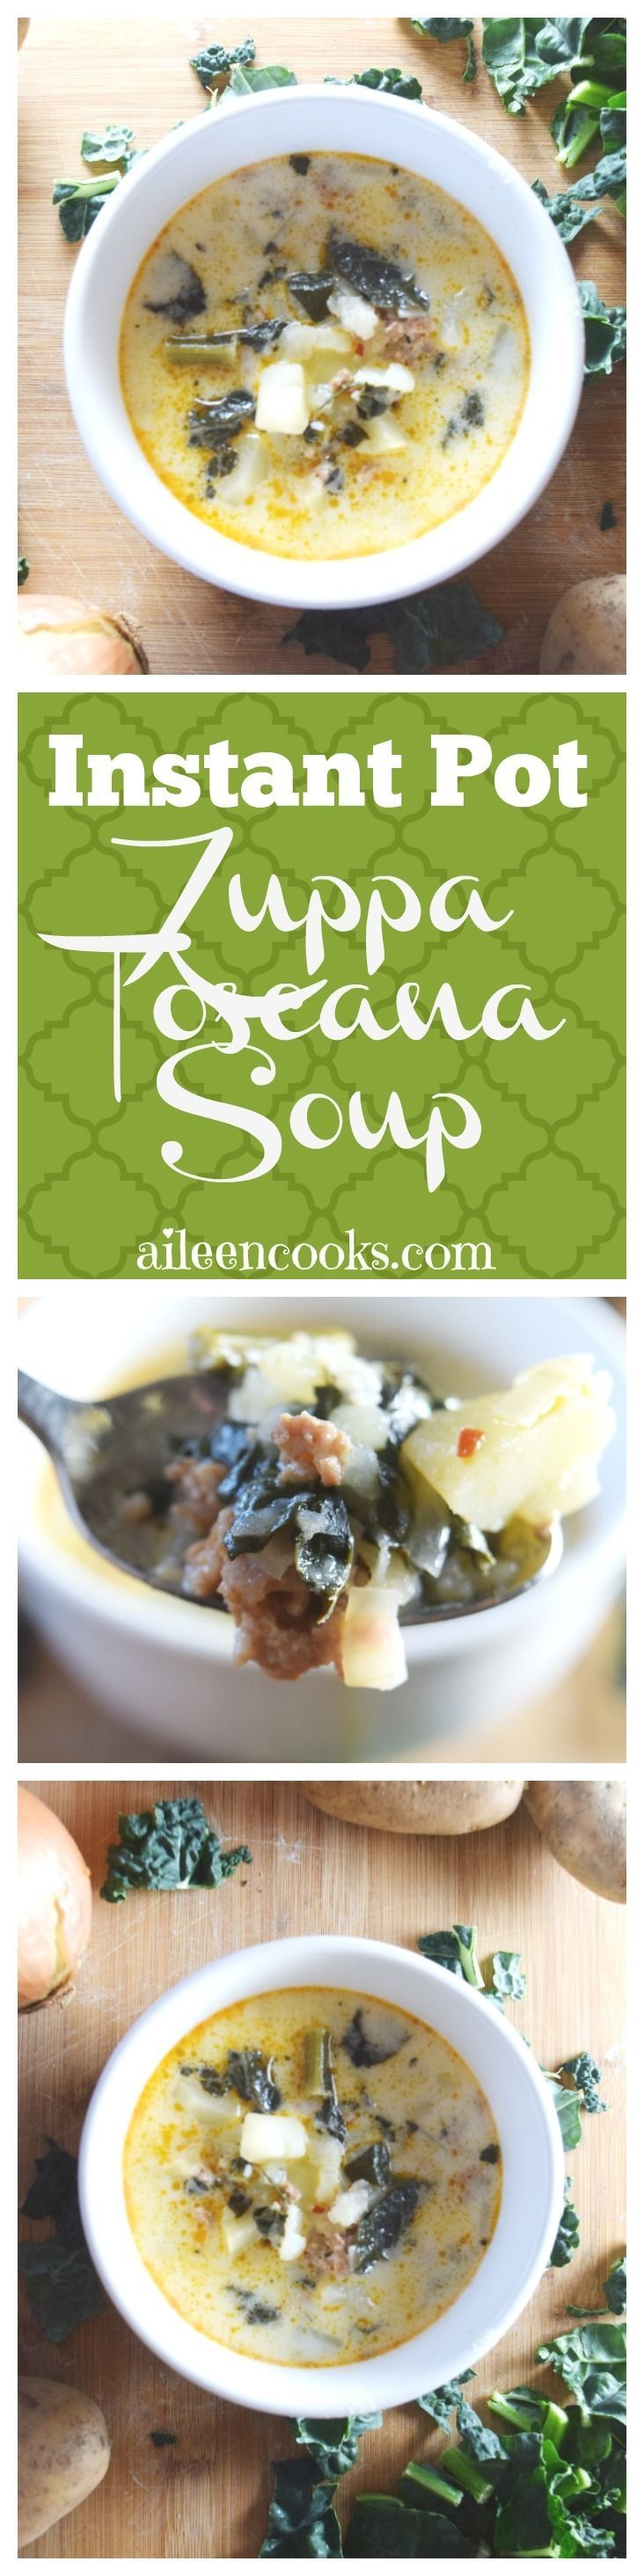 Make this delicious and hearty instant pot zuppa toscana soup at home! This recipe makes a large batch that tastes wonderful the next day. It's filled with hot Italian sausage, kale, hearty potatoes, garlic, and onion. This recipe includes slow cooker instructions, too! via @aileencooks